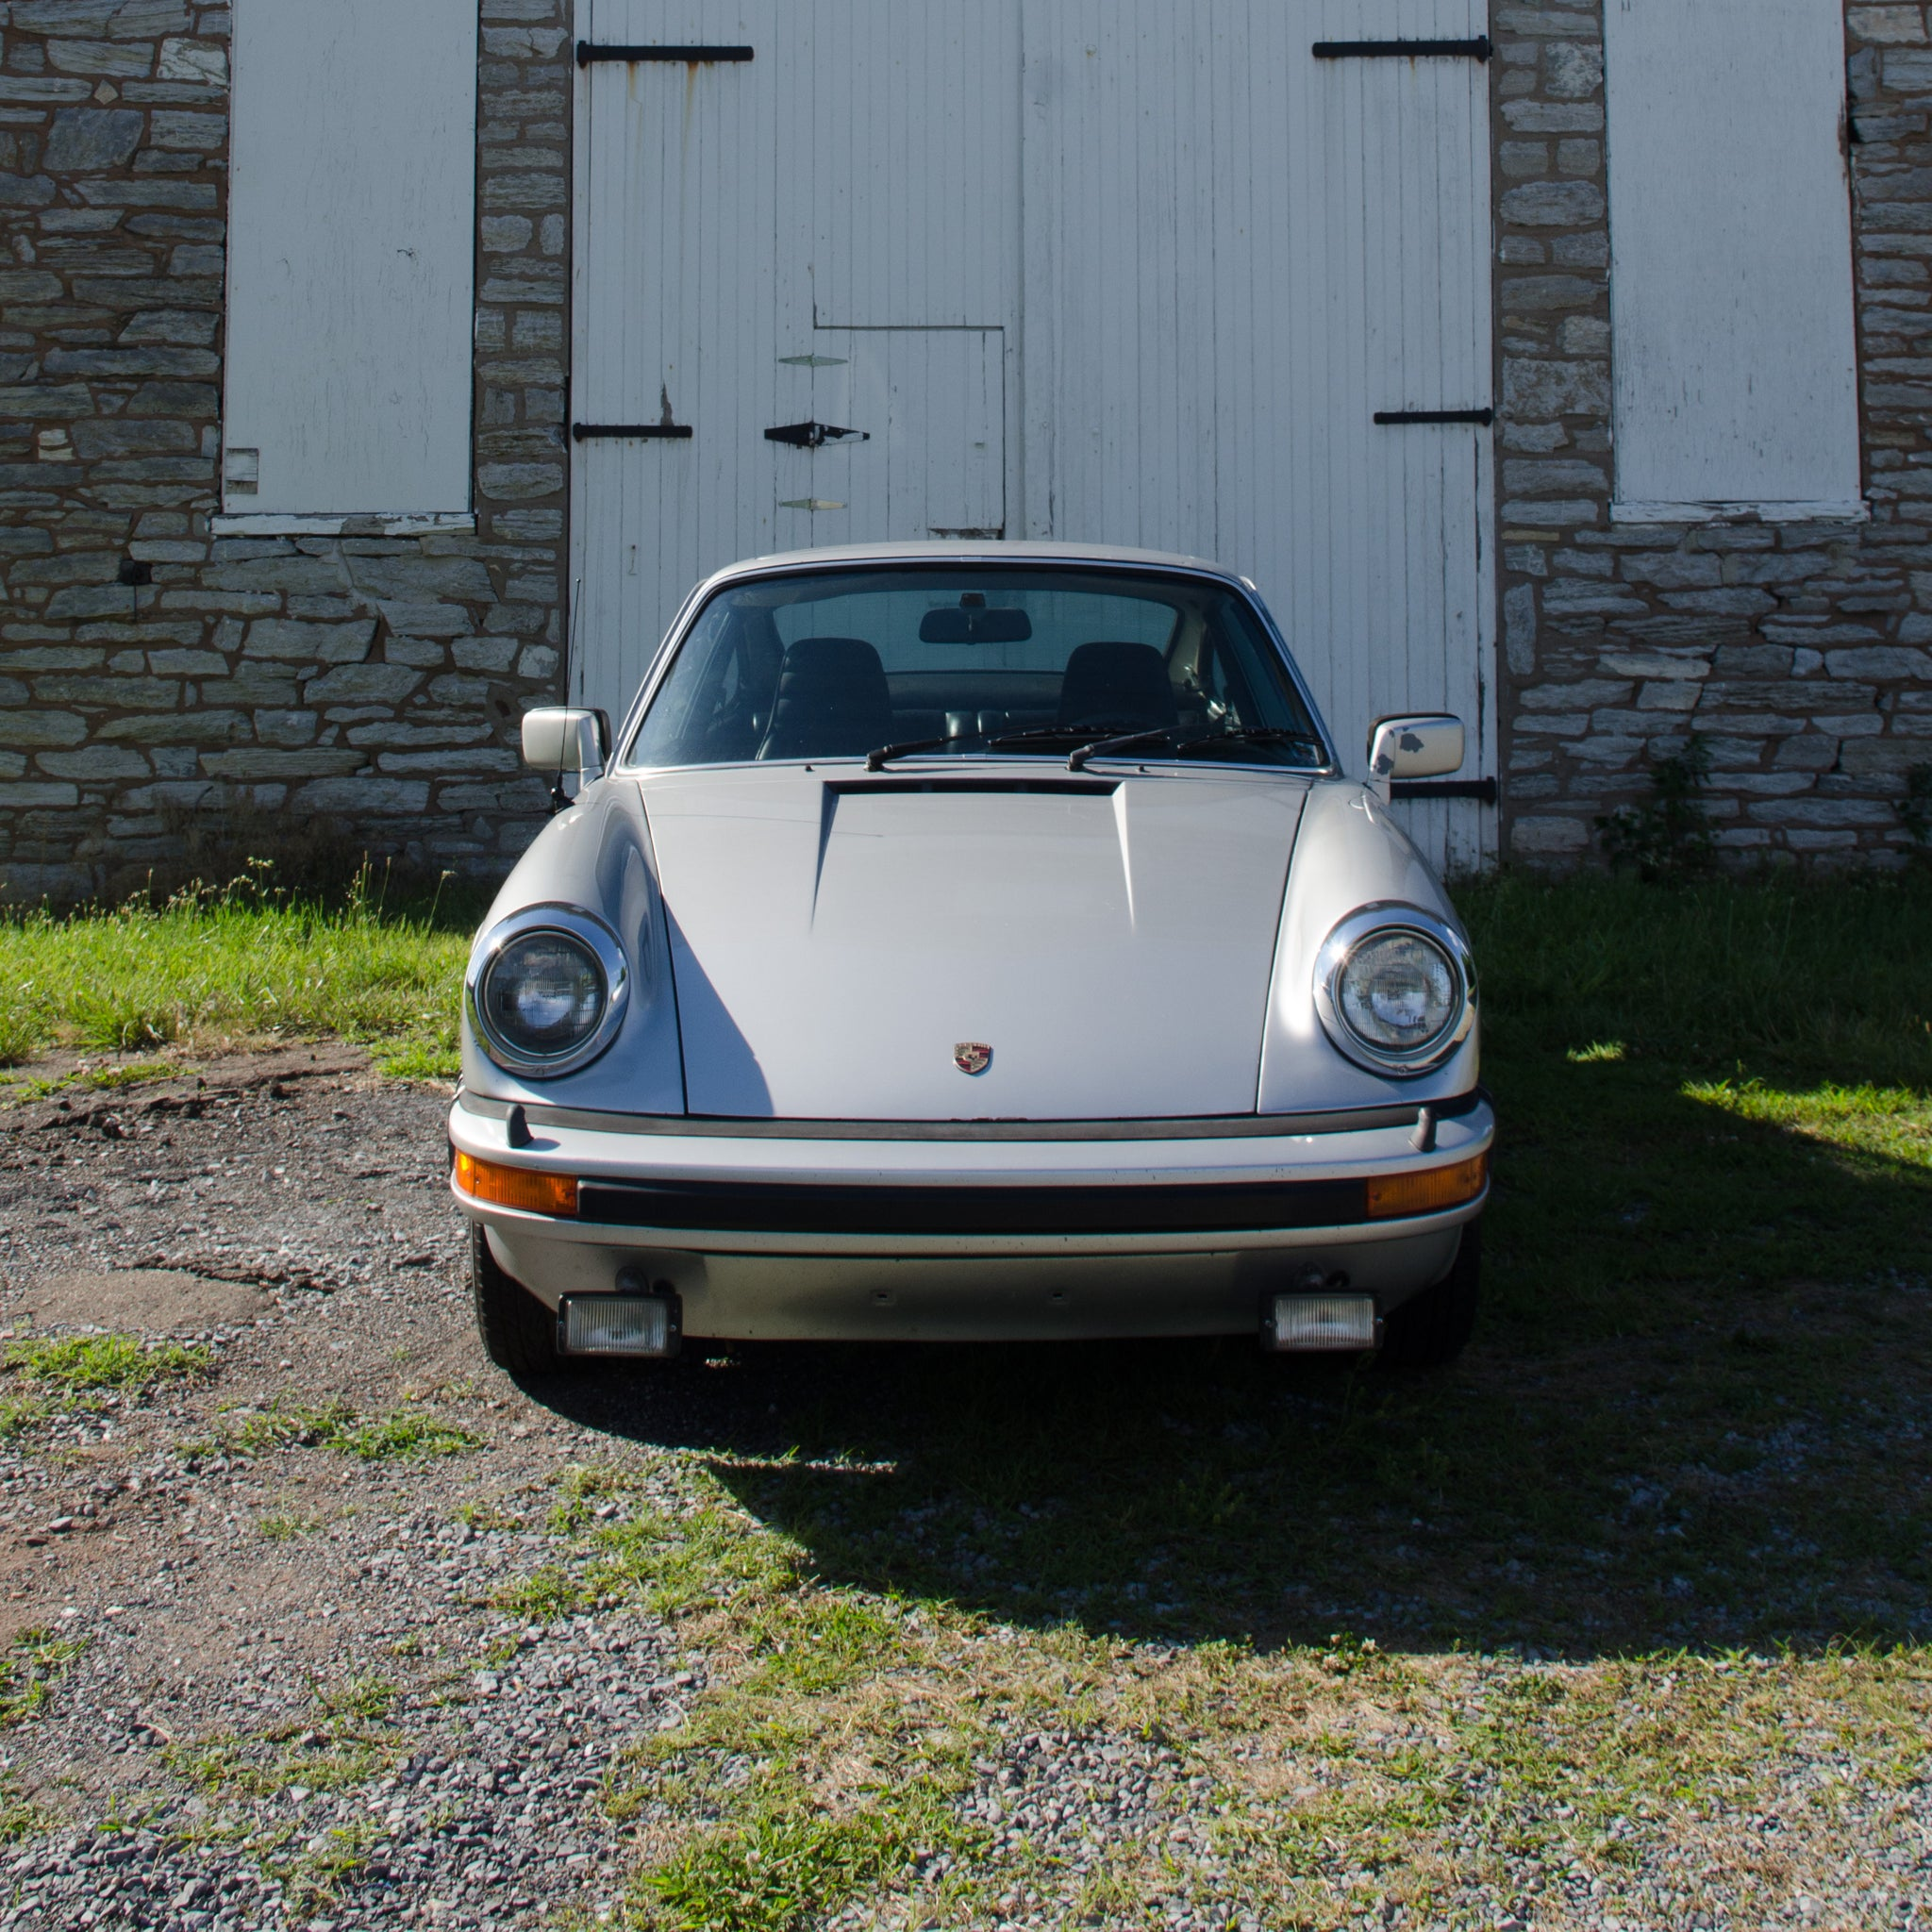 SOLD 1977 Porsche 911S Sunroof Coupe All Original, Matching Numbers